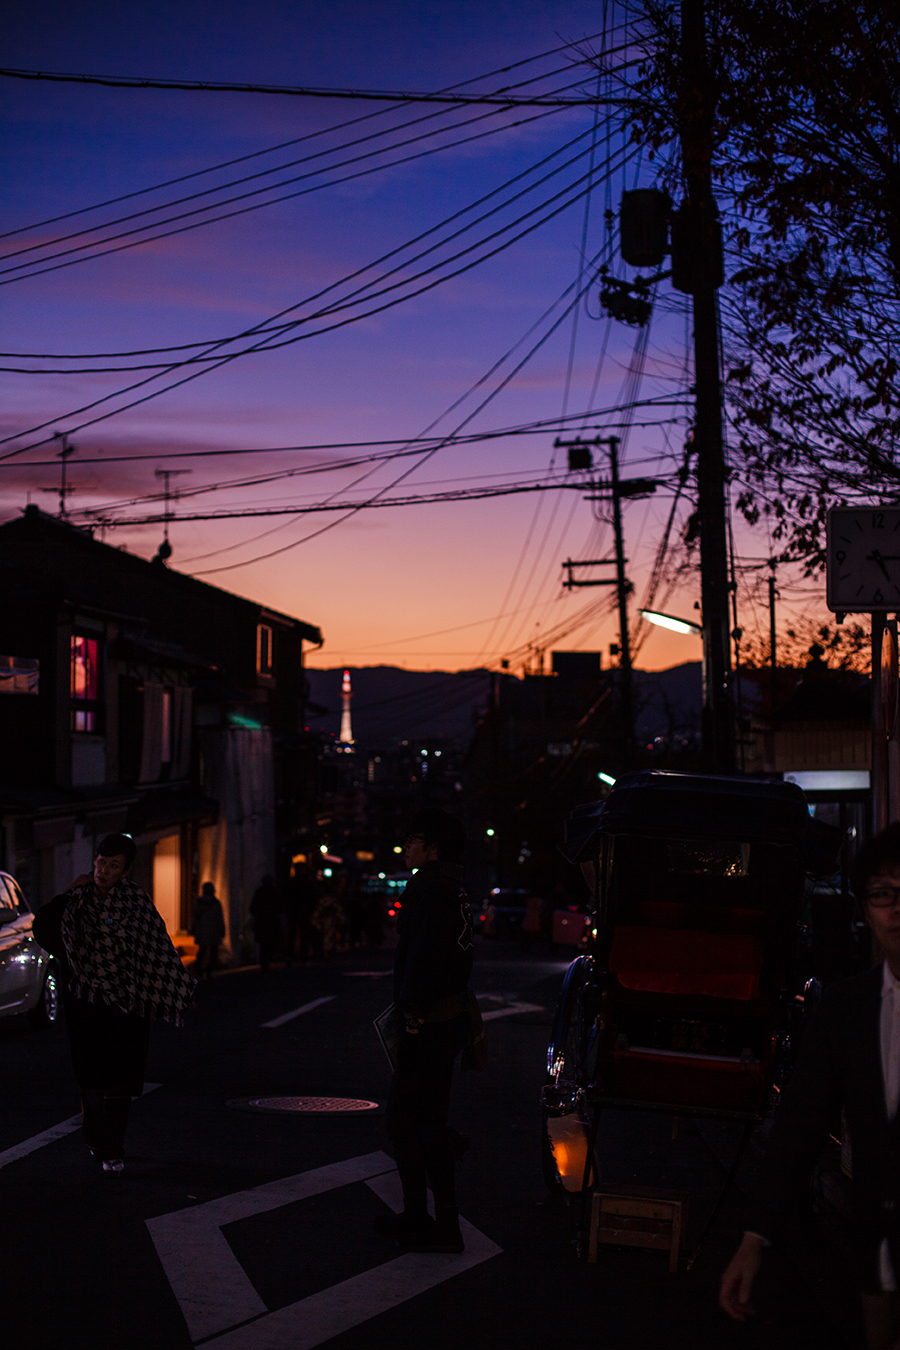 Sunset at Higashiyama, Kyoto Japan.